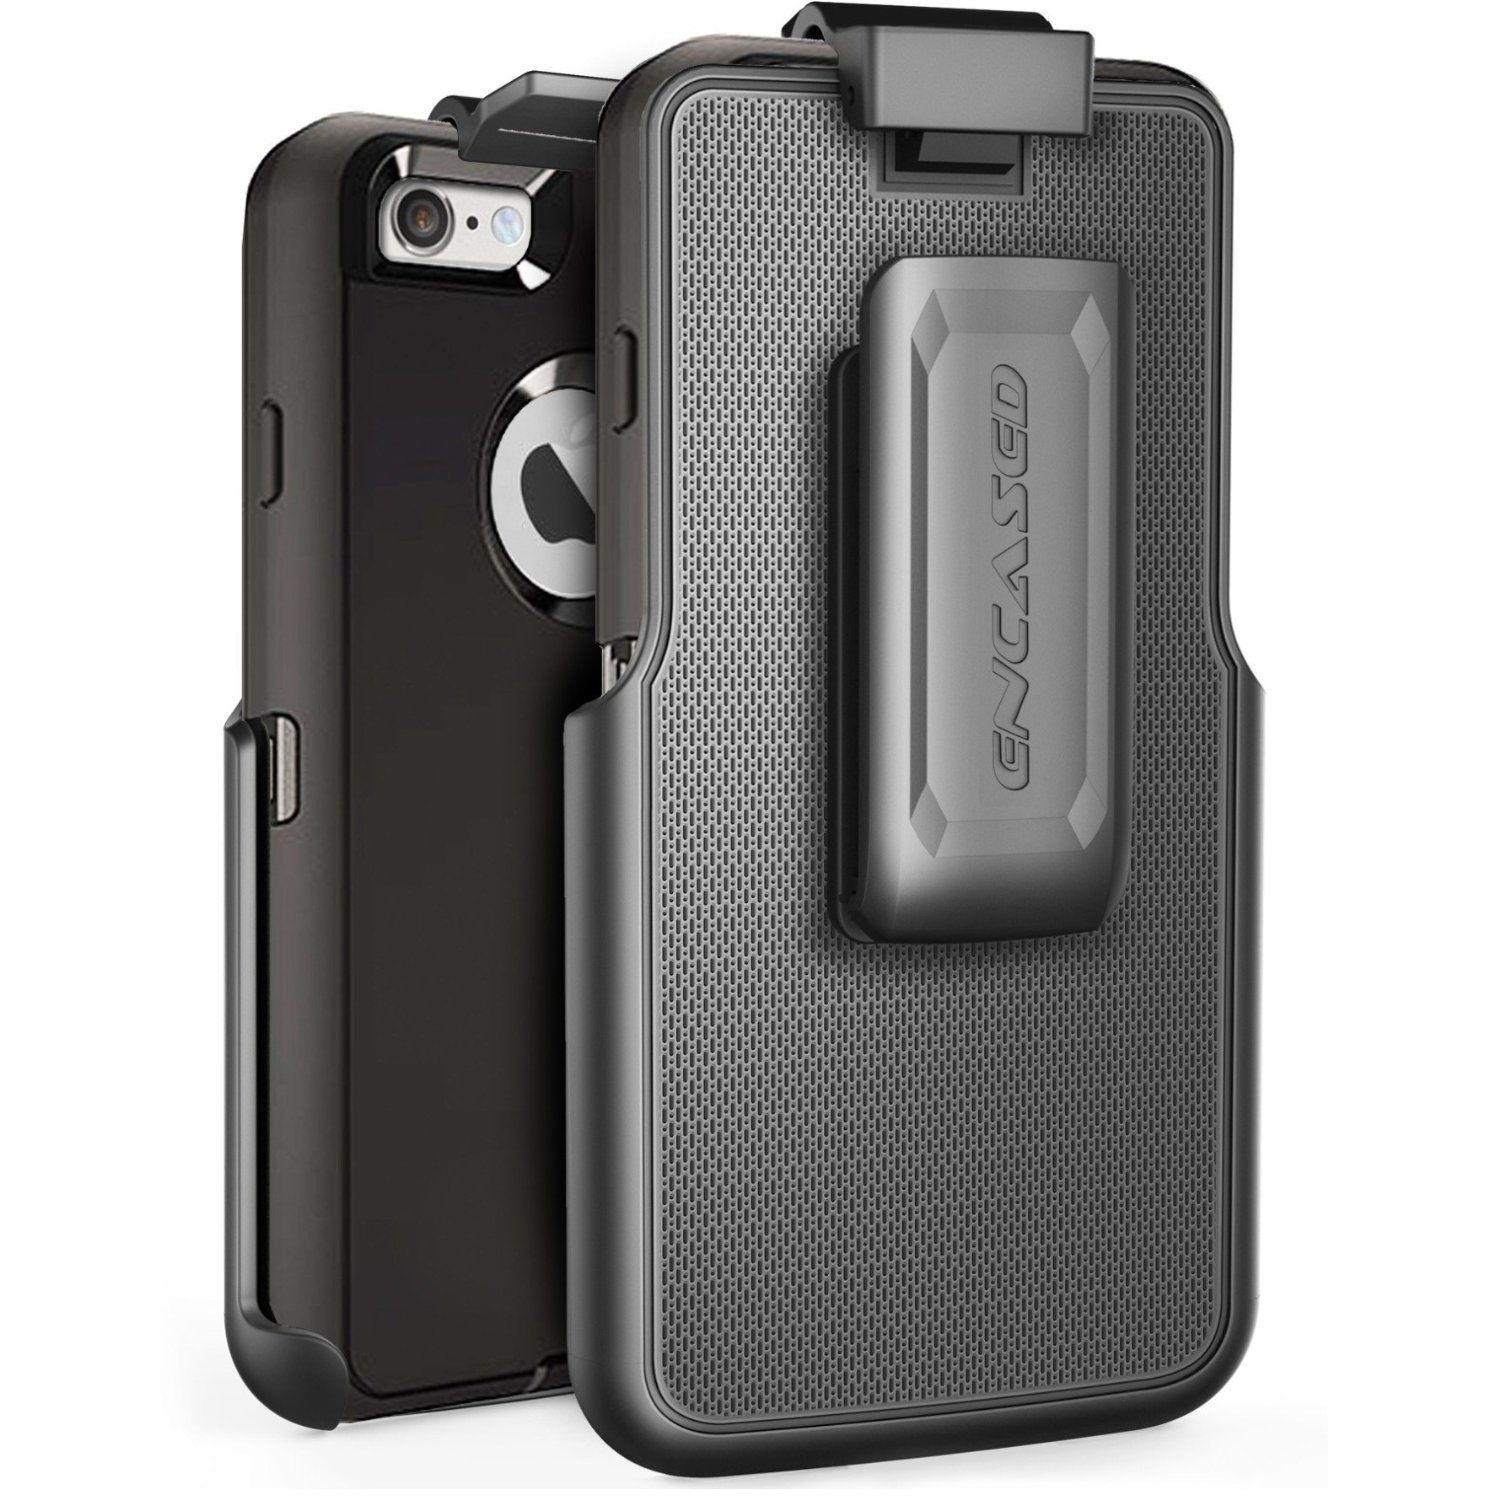 OEM Encased® Belt Clip Holster For iPhone 6 6S 4.7 Otterbox Defender Series Case